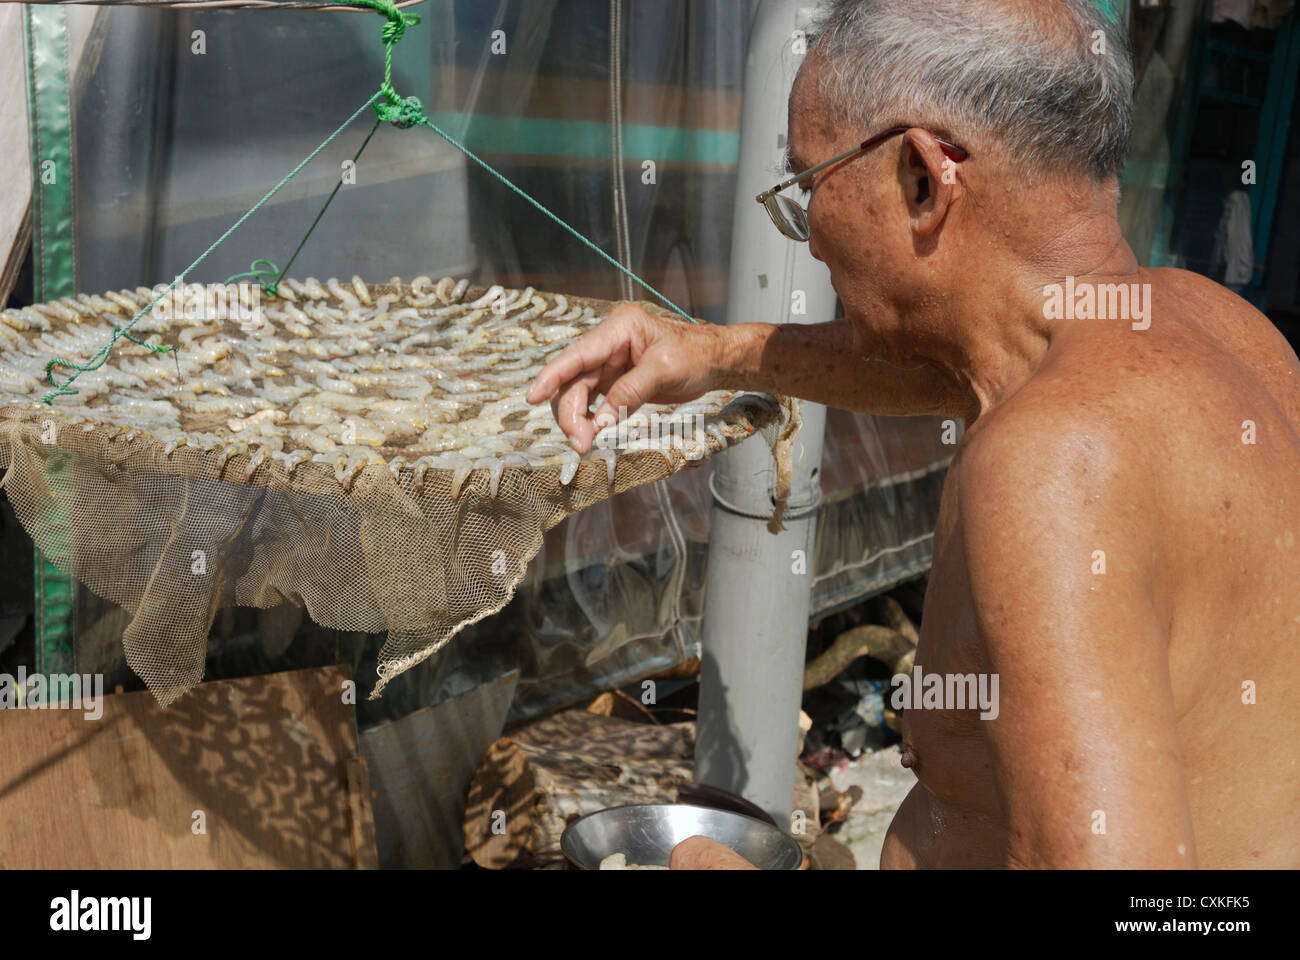 Tai O village man drying shrimp in the hot sun. - Stock Image